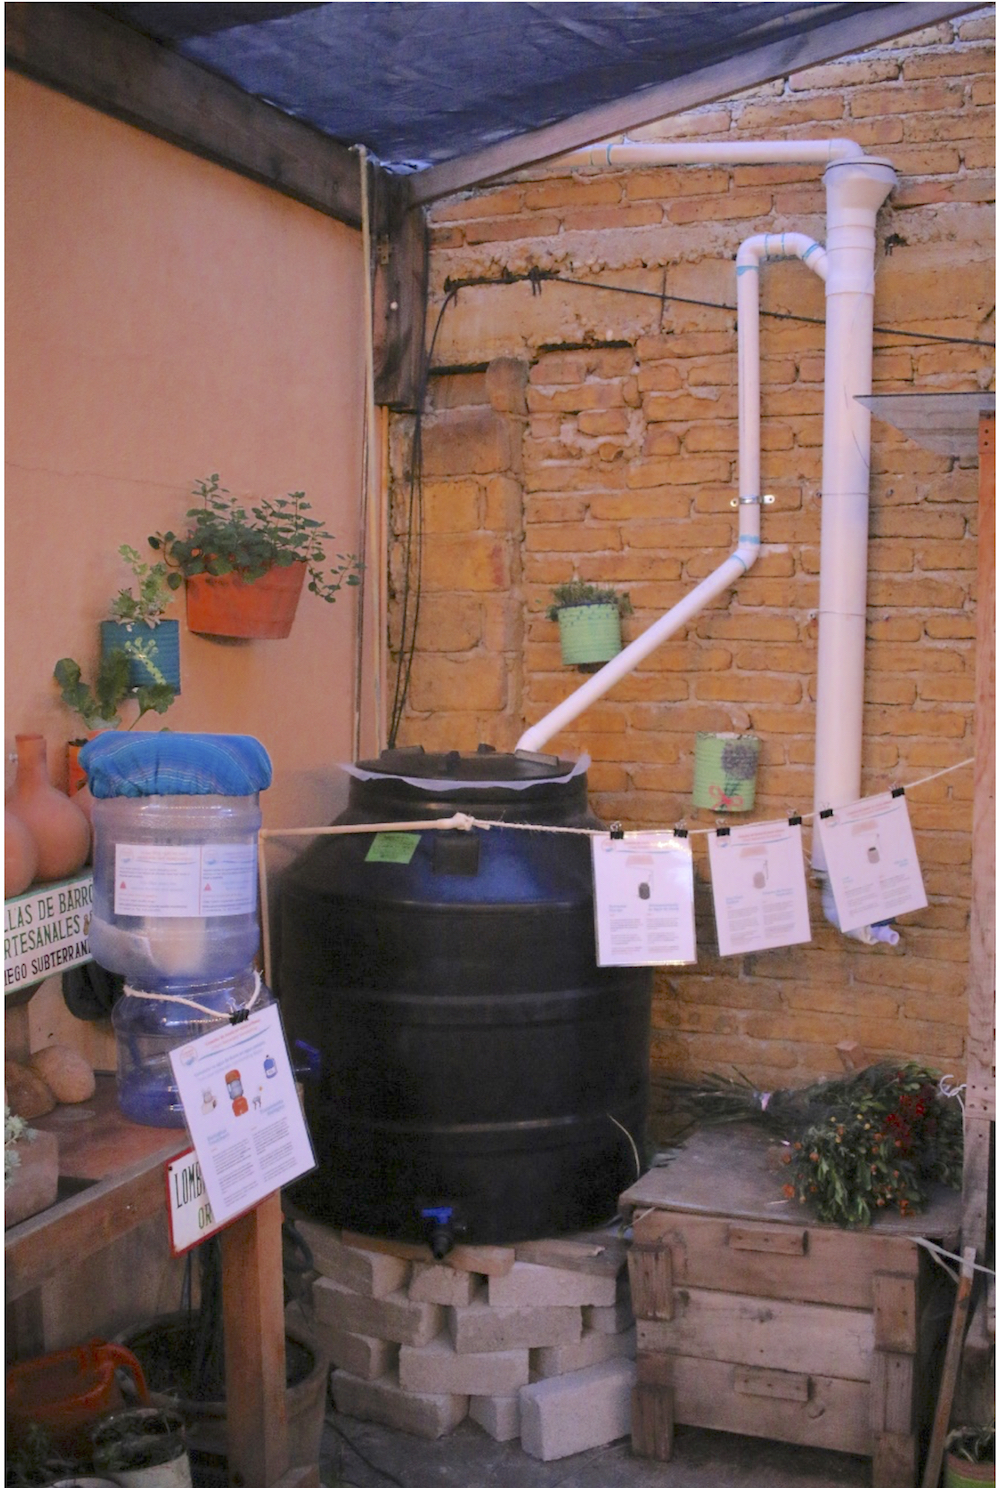 Small-scale urban rainwater harvesting system - utilizing our ceramic water filter for post-filtration -located at Vía Orgánica in San Miguel de Allende, Gto, México.